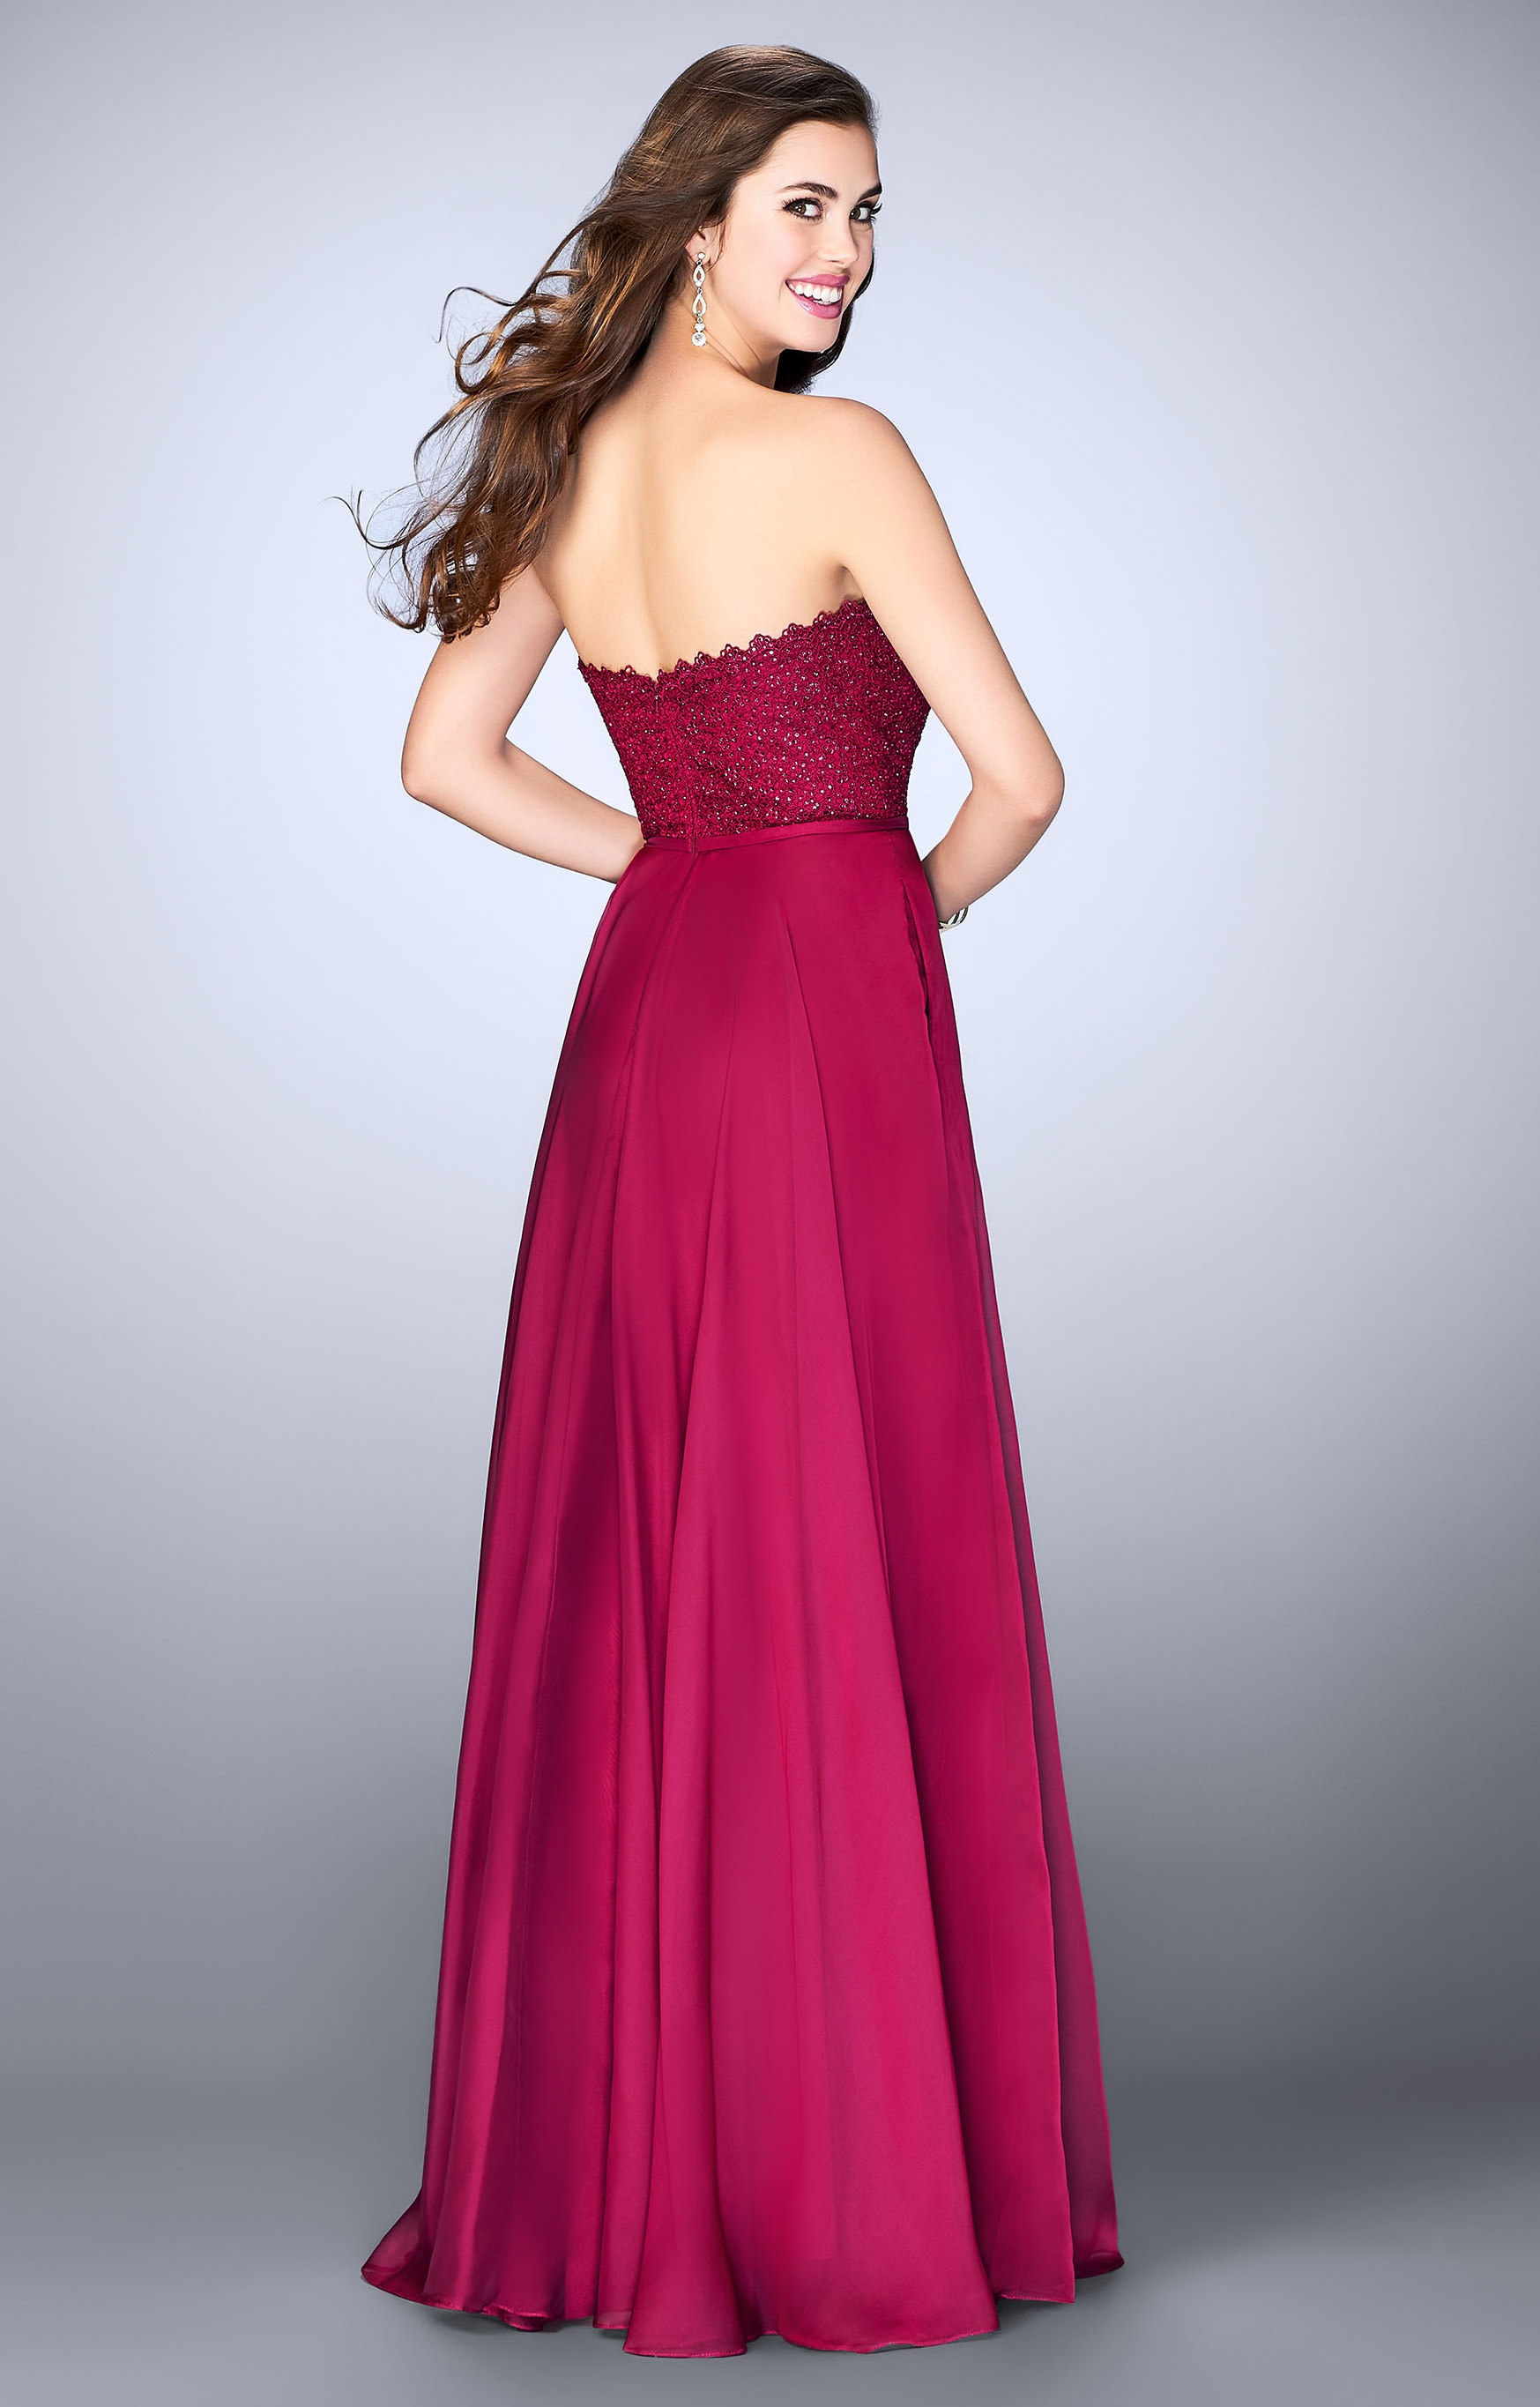 Beaded Strapless Prom Gowns, La Femme Strapless